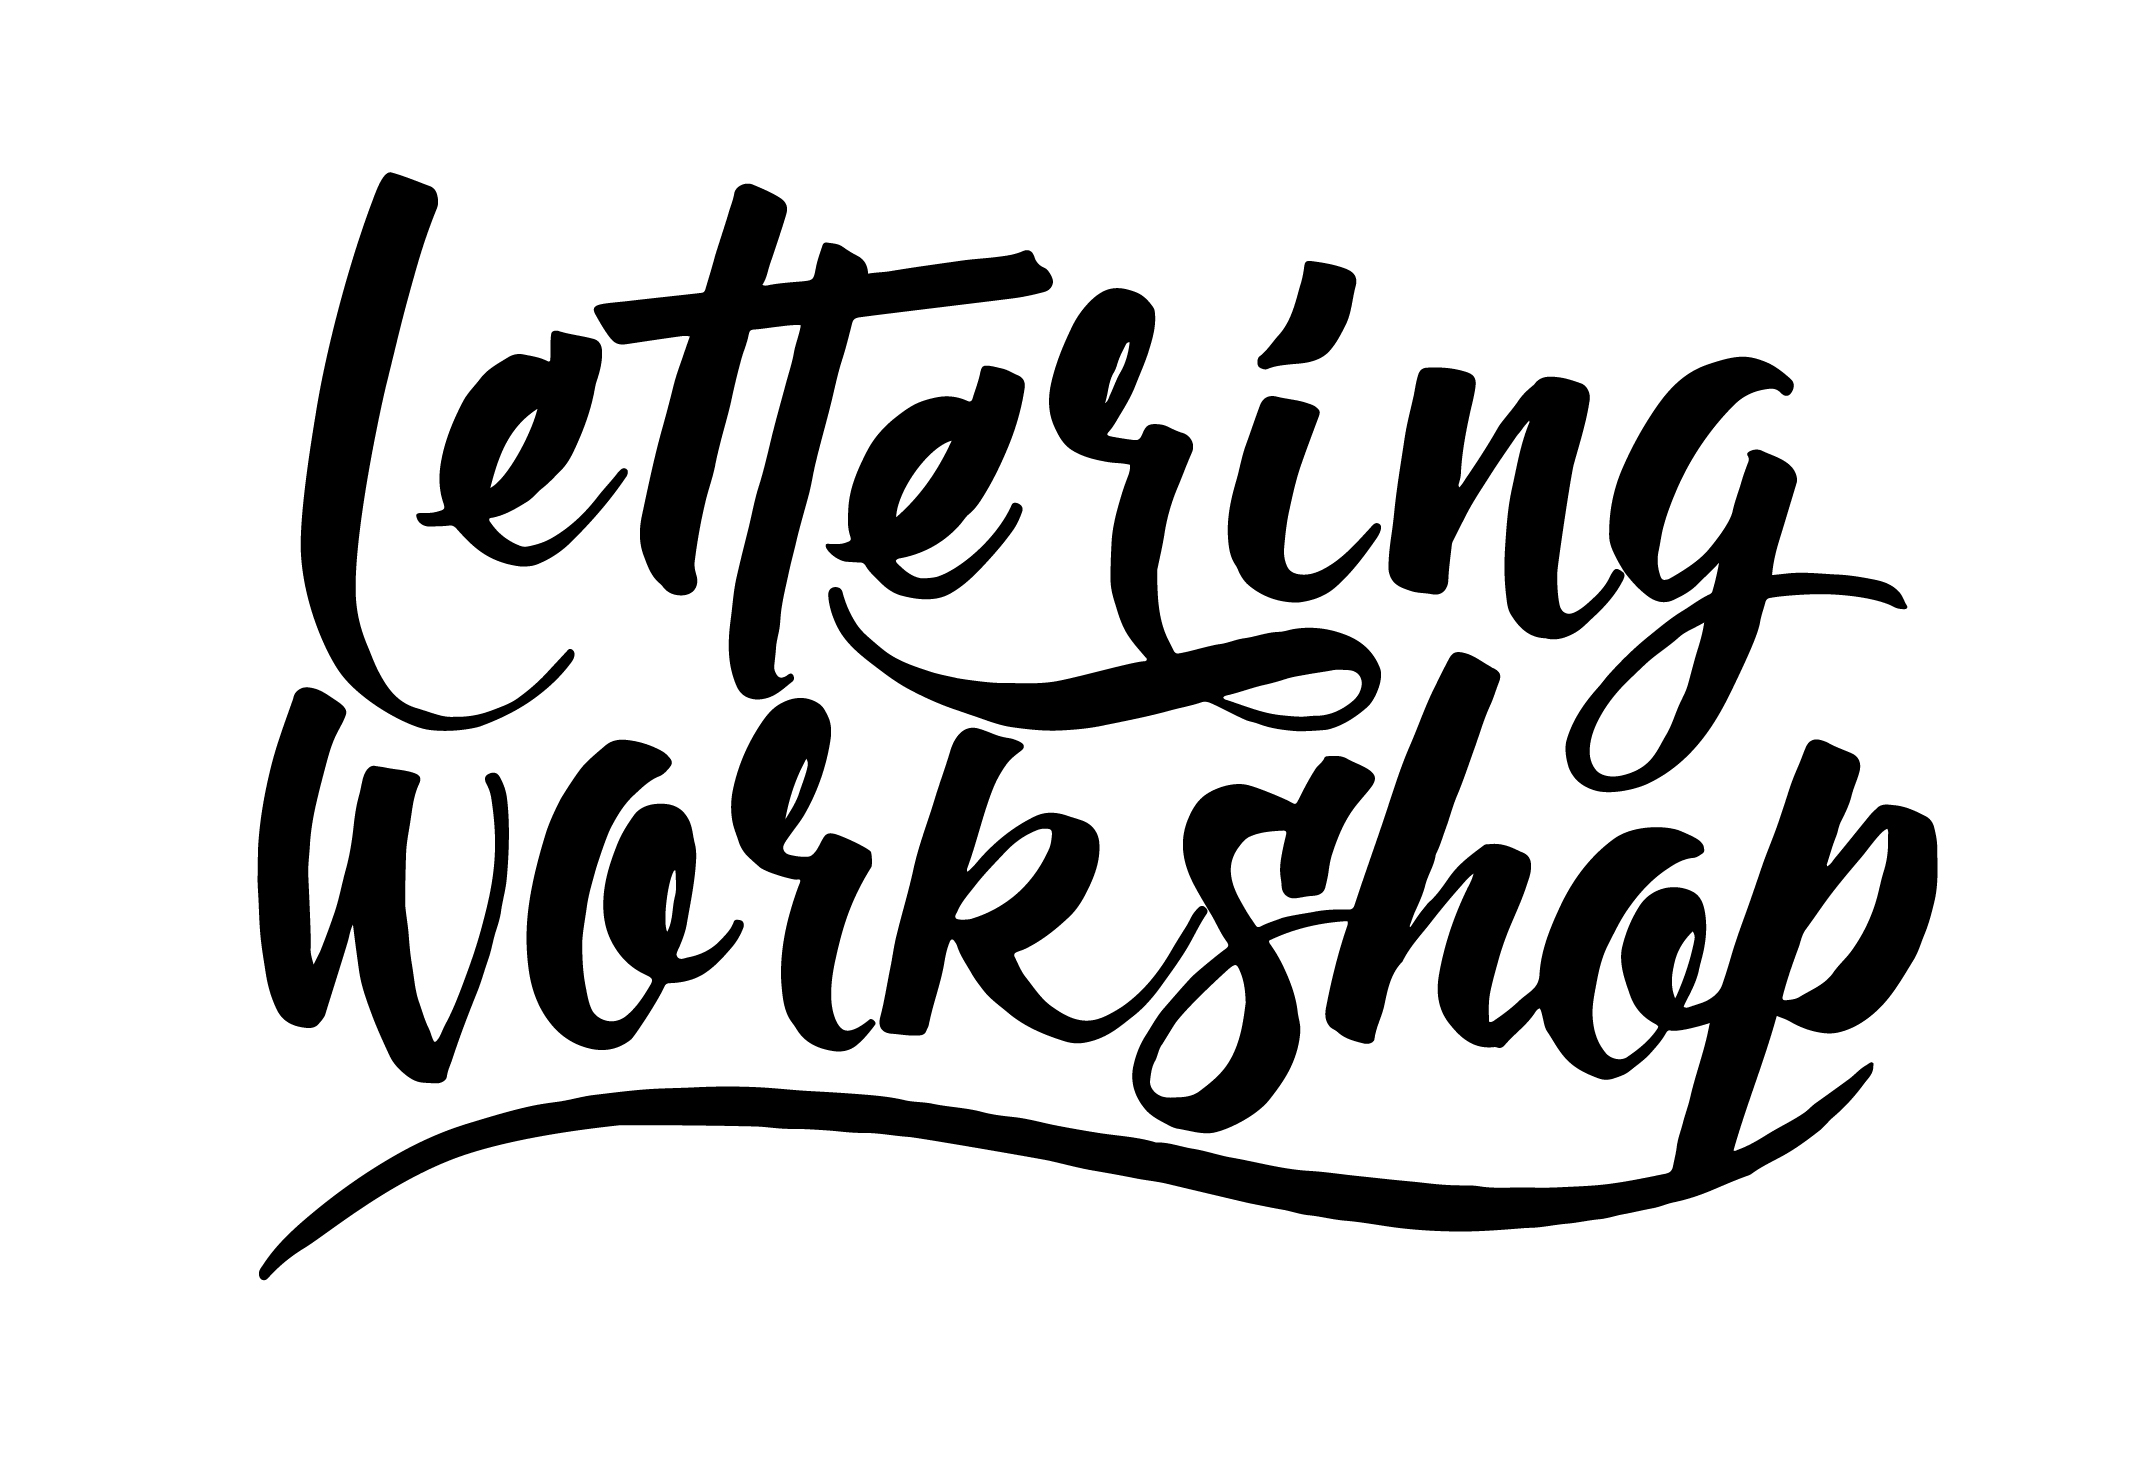 Lettering Workshop text written with brush pen